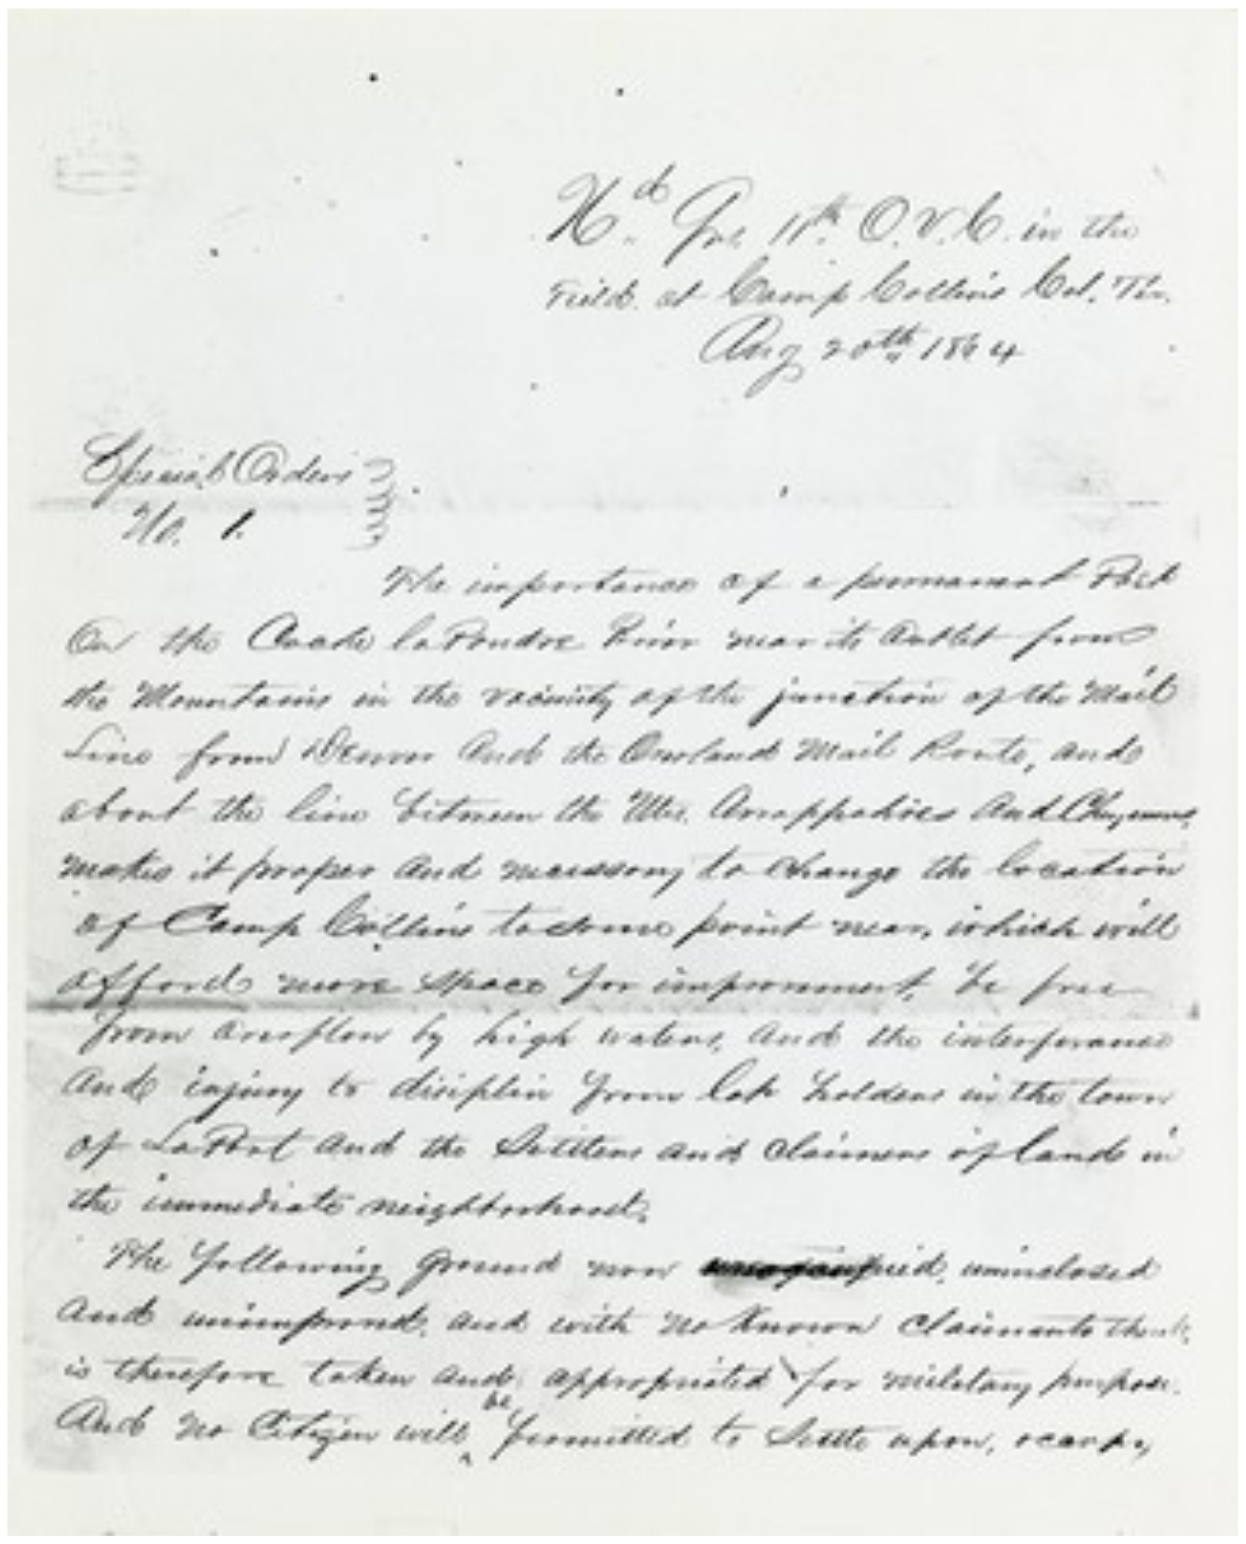 Special Order Number 1, officially designating Fort Collins as a military reservation, August 20, 1864